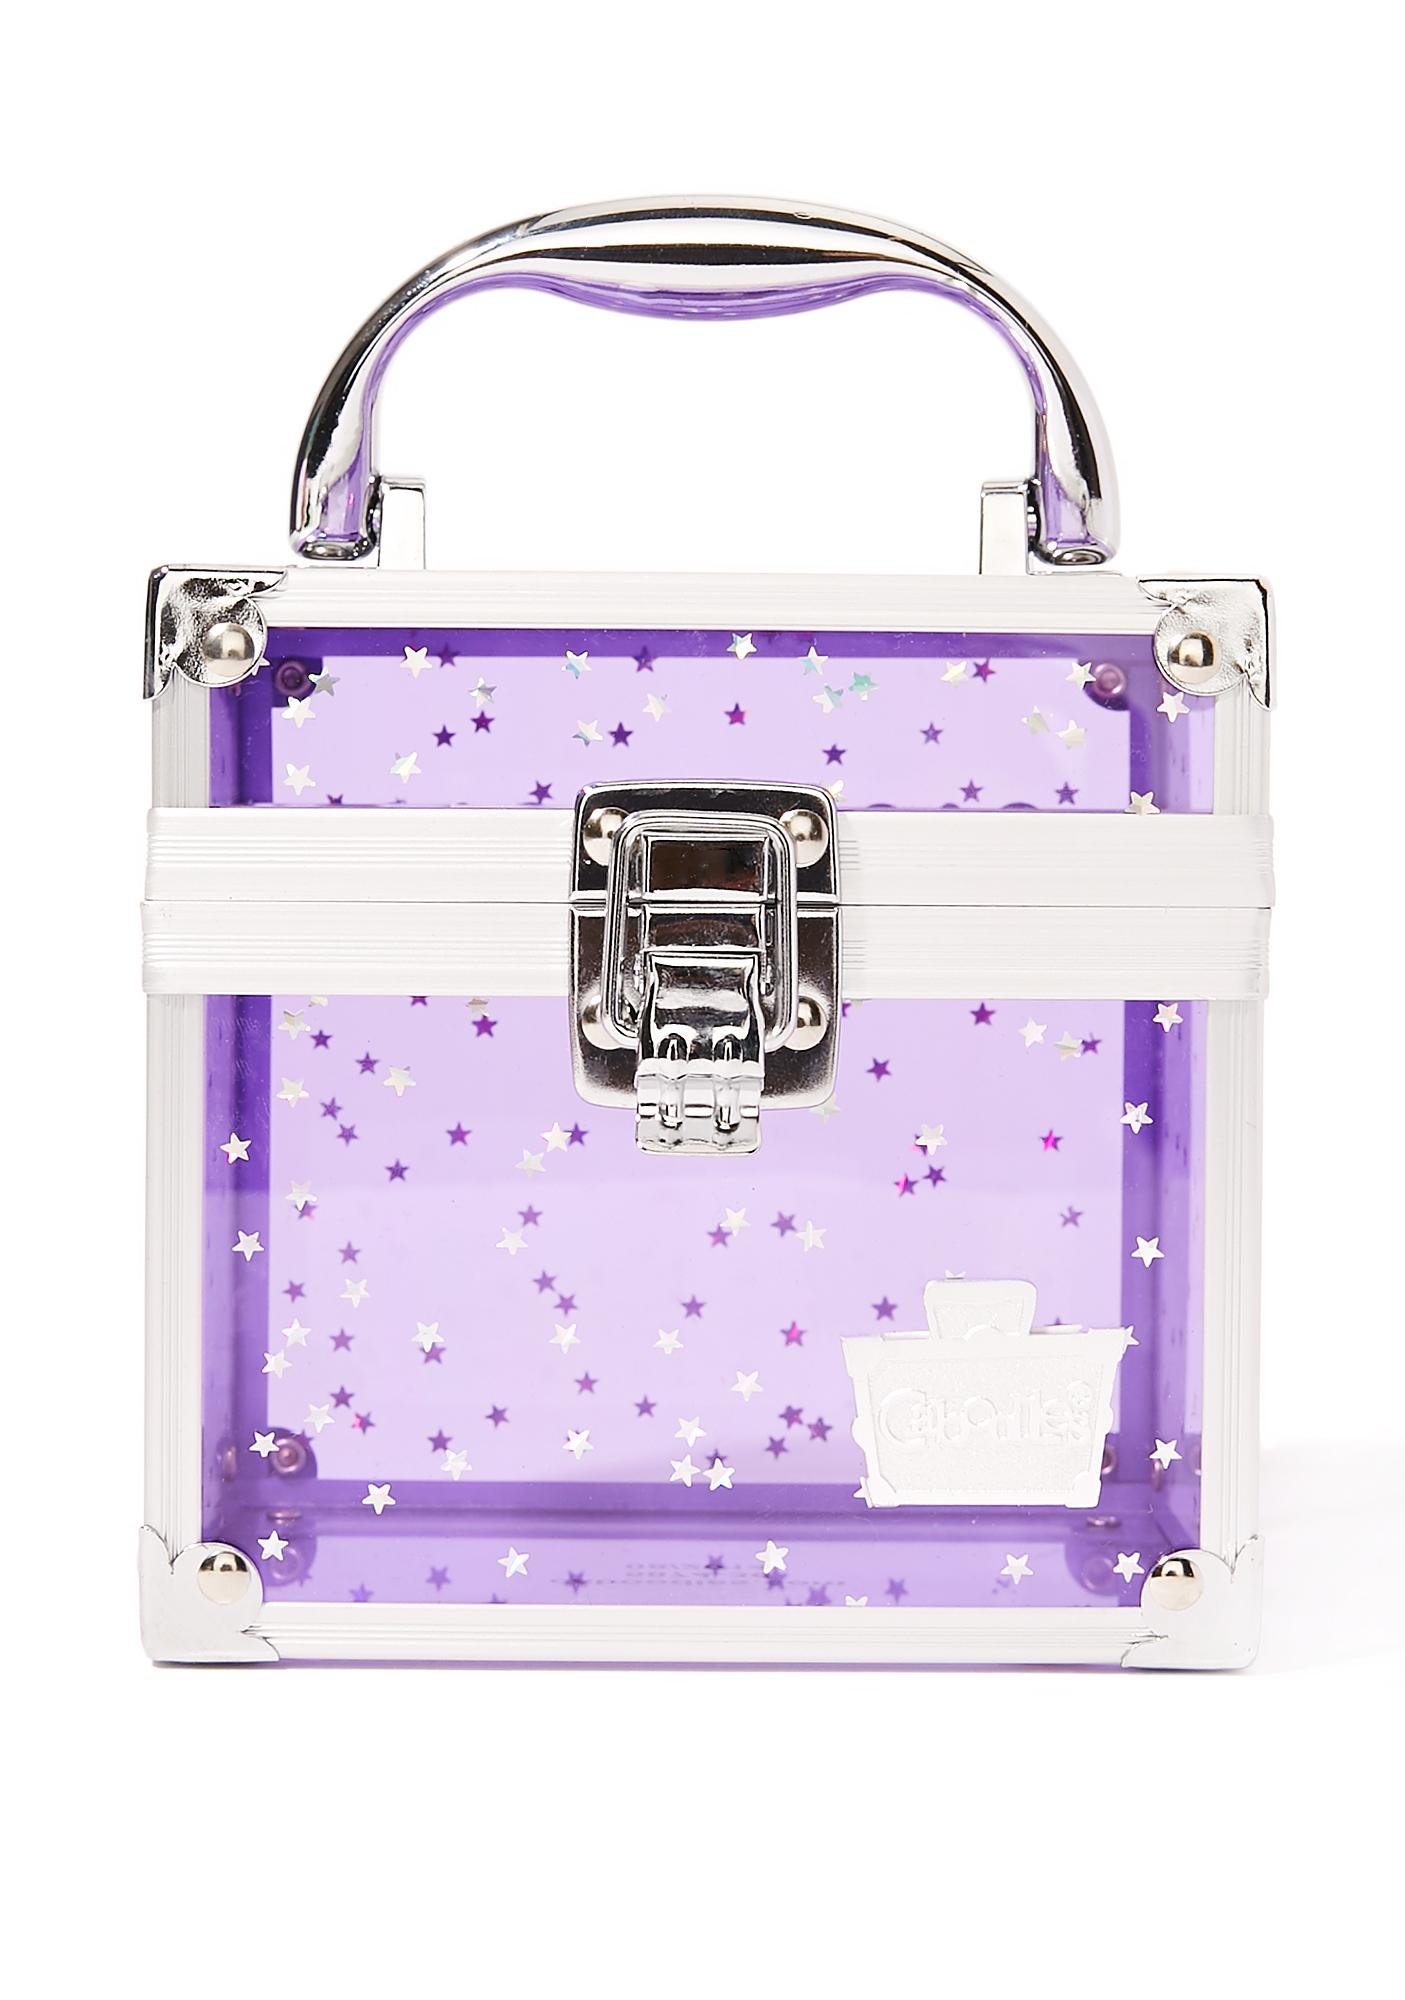 Caboodles Purple Oh La La Clear Makeup Case